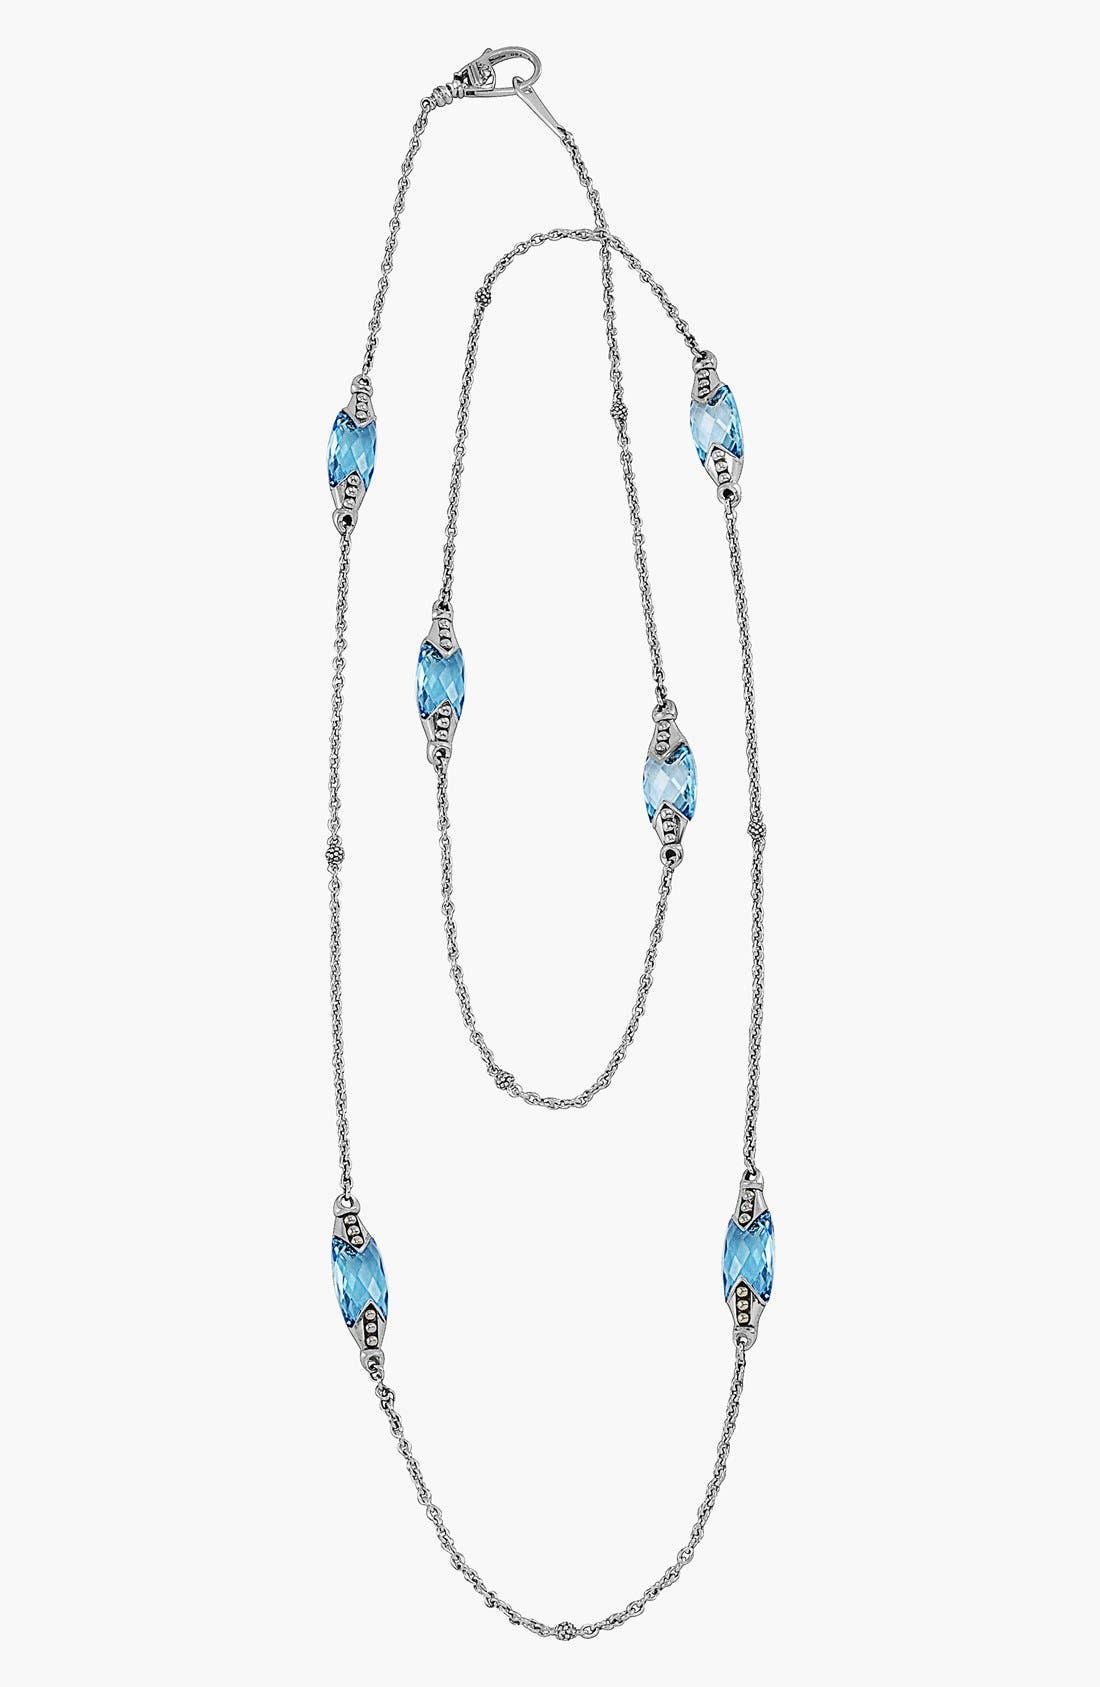 Main Image - Lagos 'Prism' Long Station Necklace